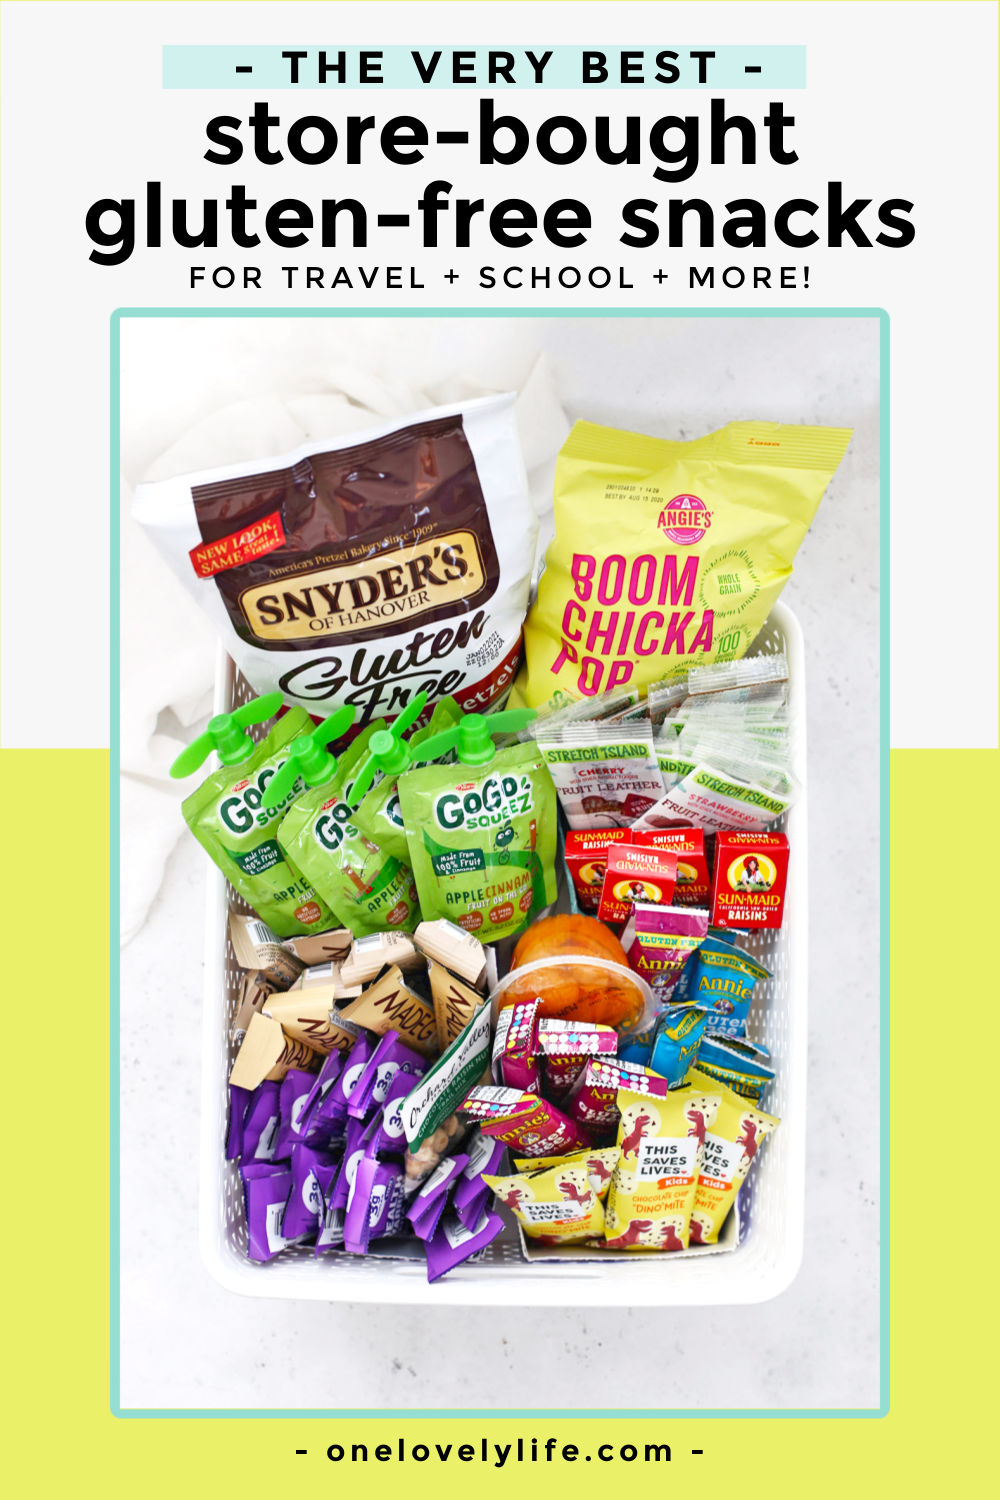 Our Favorite Store-Bought Gluten-Free Snacks For Kids. Easy to buy gluten-free snacks for kids. Perfect for school, travel, taking on the go, or keeping on hand for friends and family! // Gluten-Free Snacks // Gluten-Free Snack Ideas // Gluten-Free School Snacks // Travel Snacks // Kids Snacks #snacks #travel #school #glutenfree